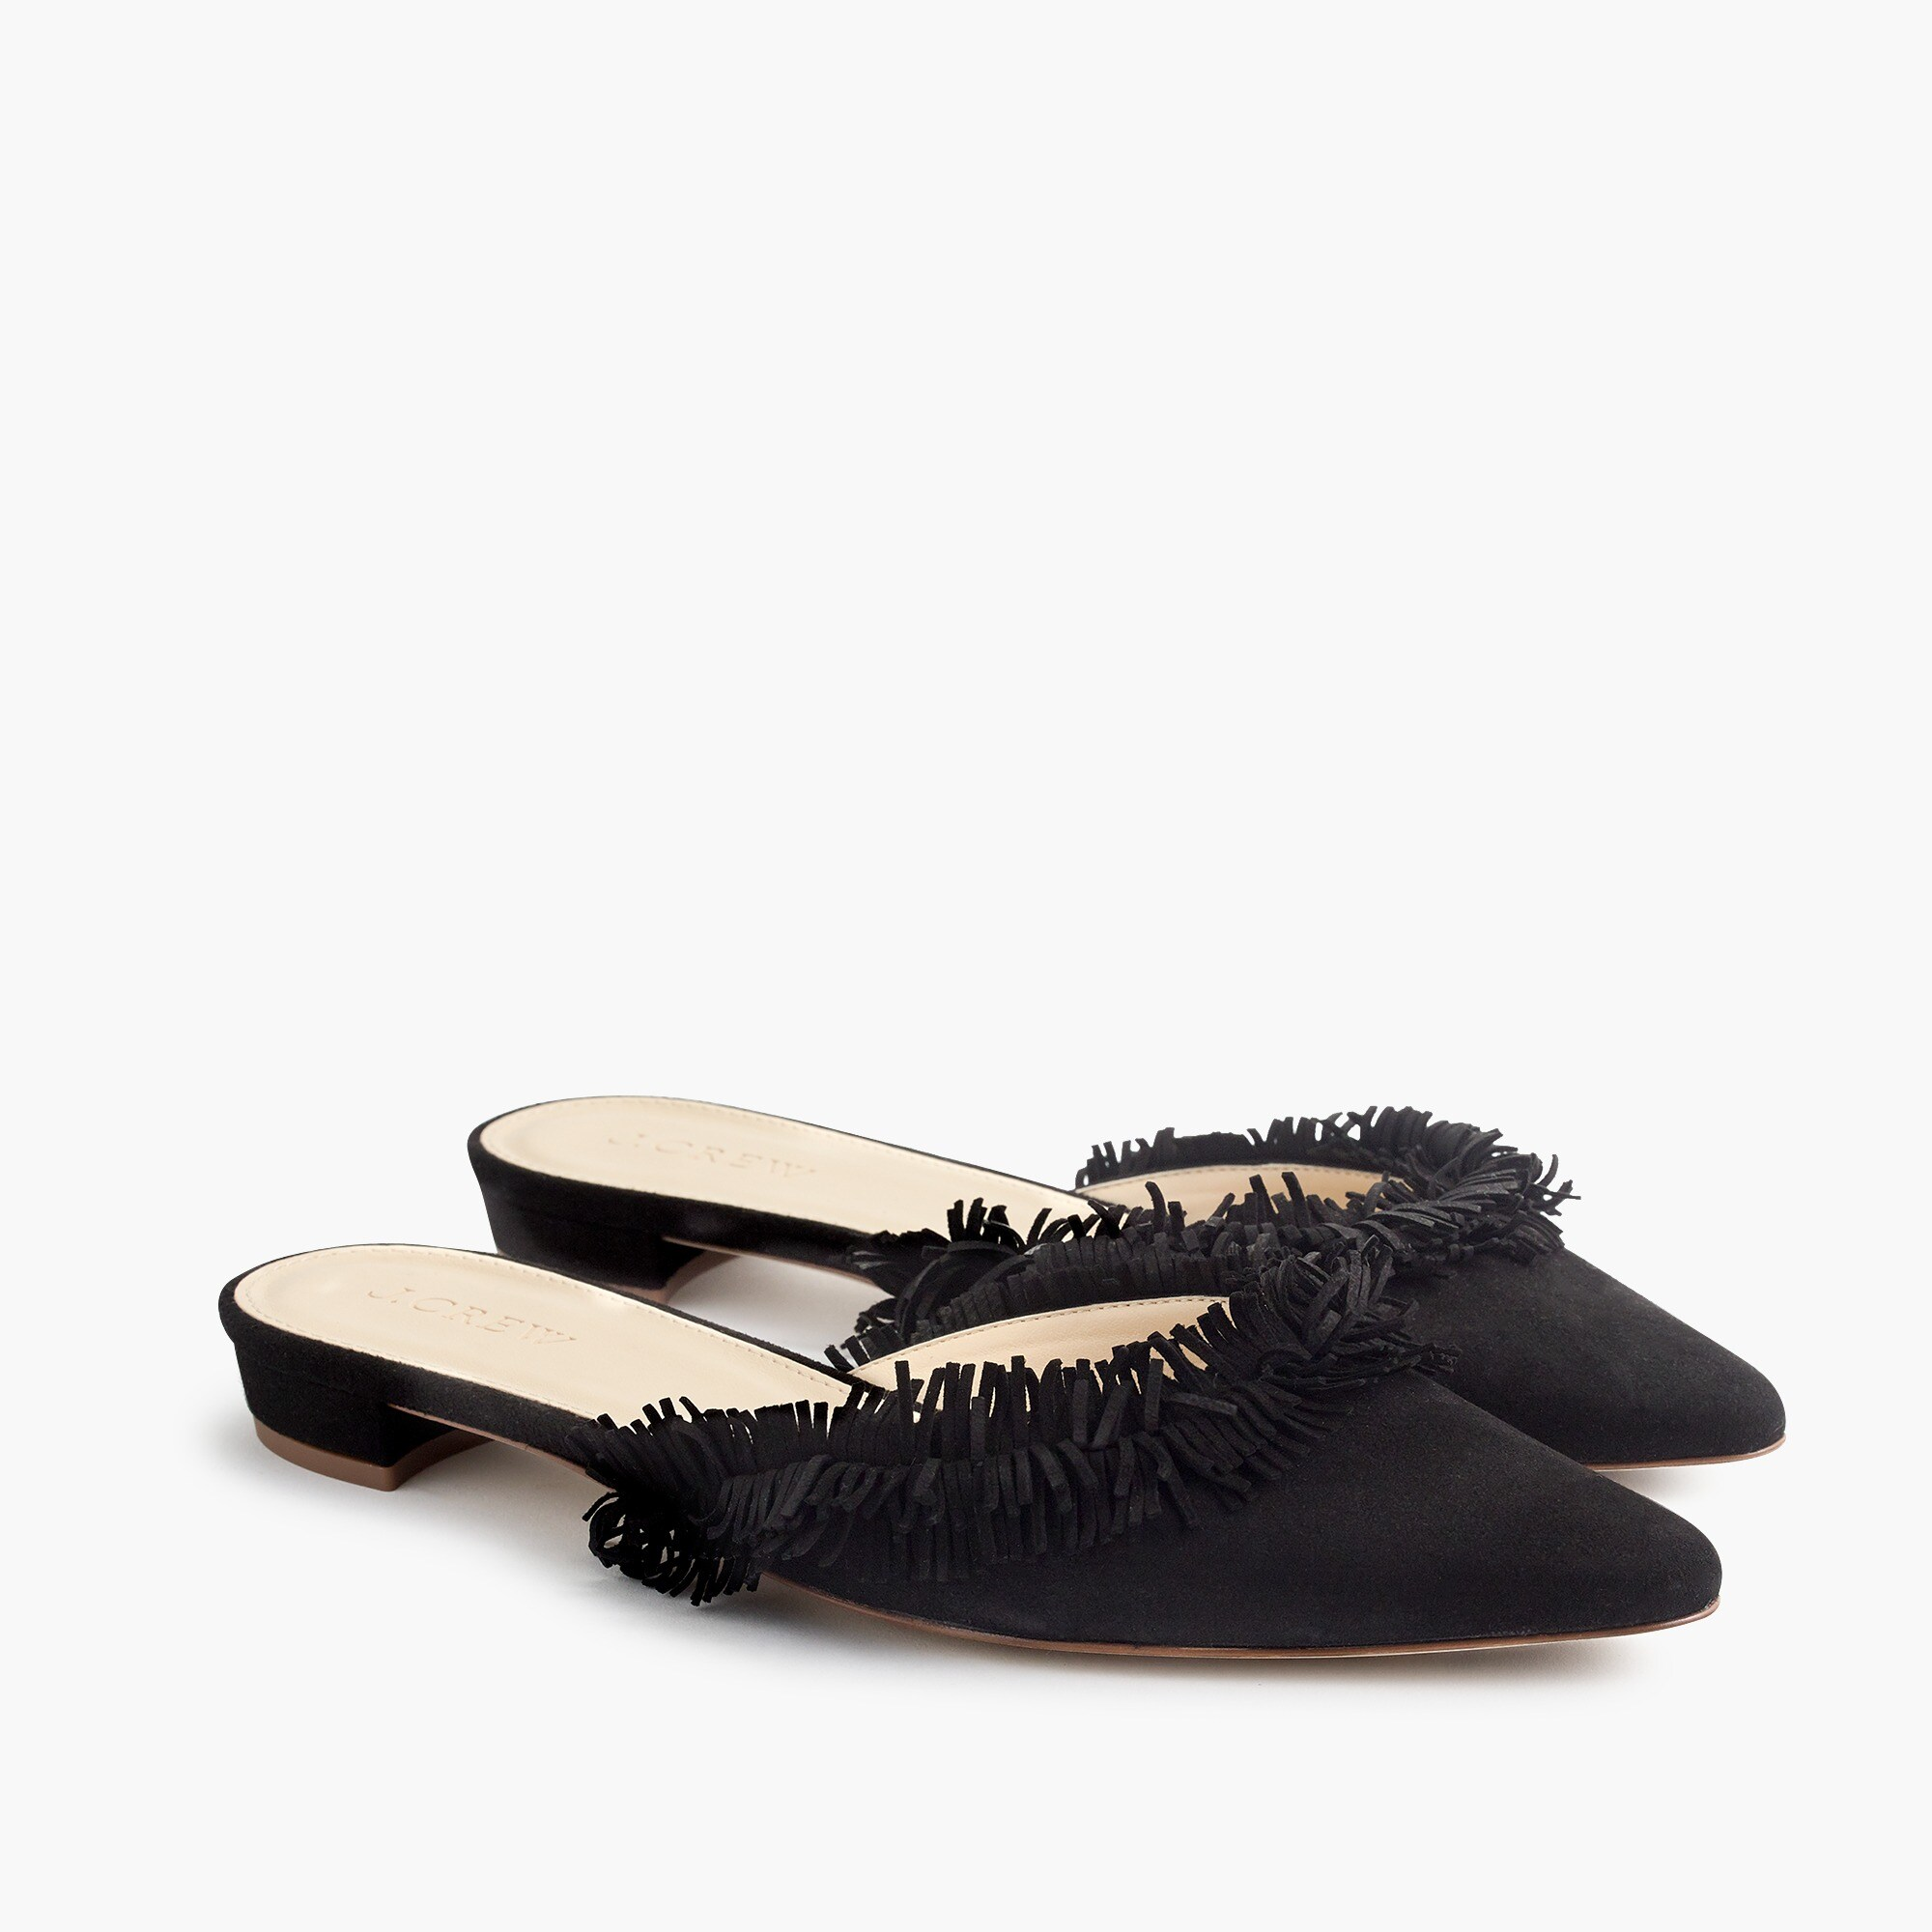 Suede fringe slipper mules women shoes c